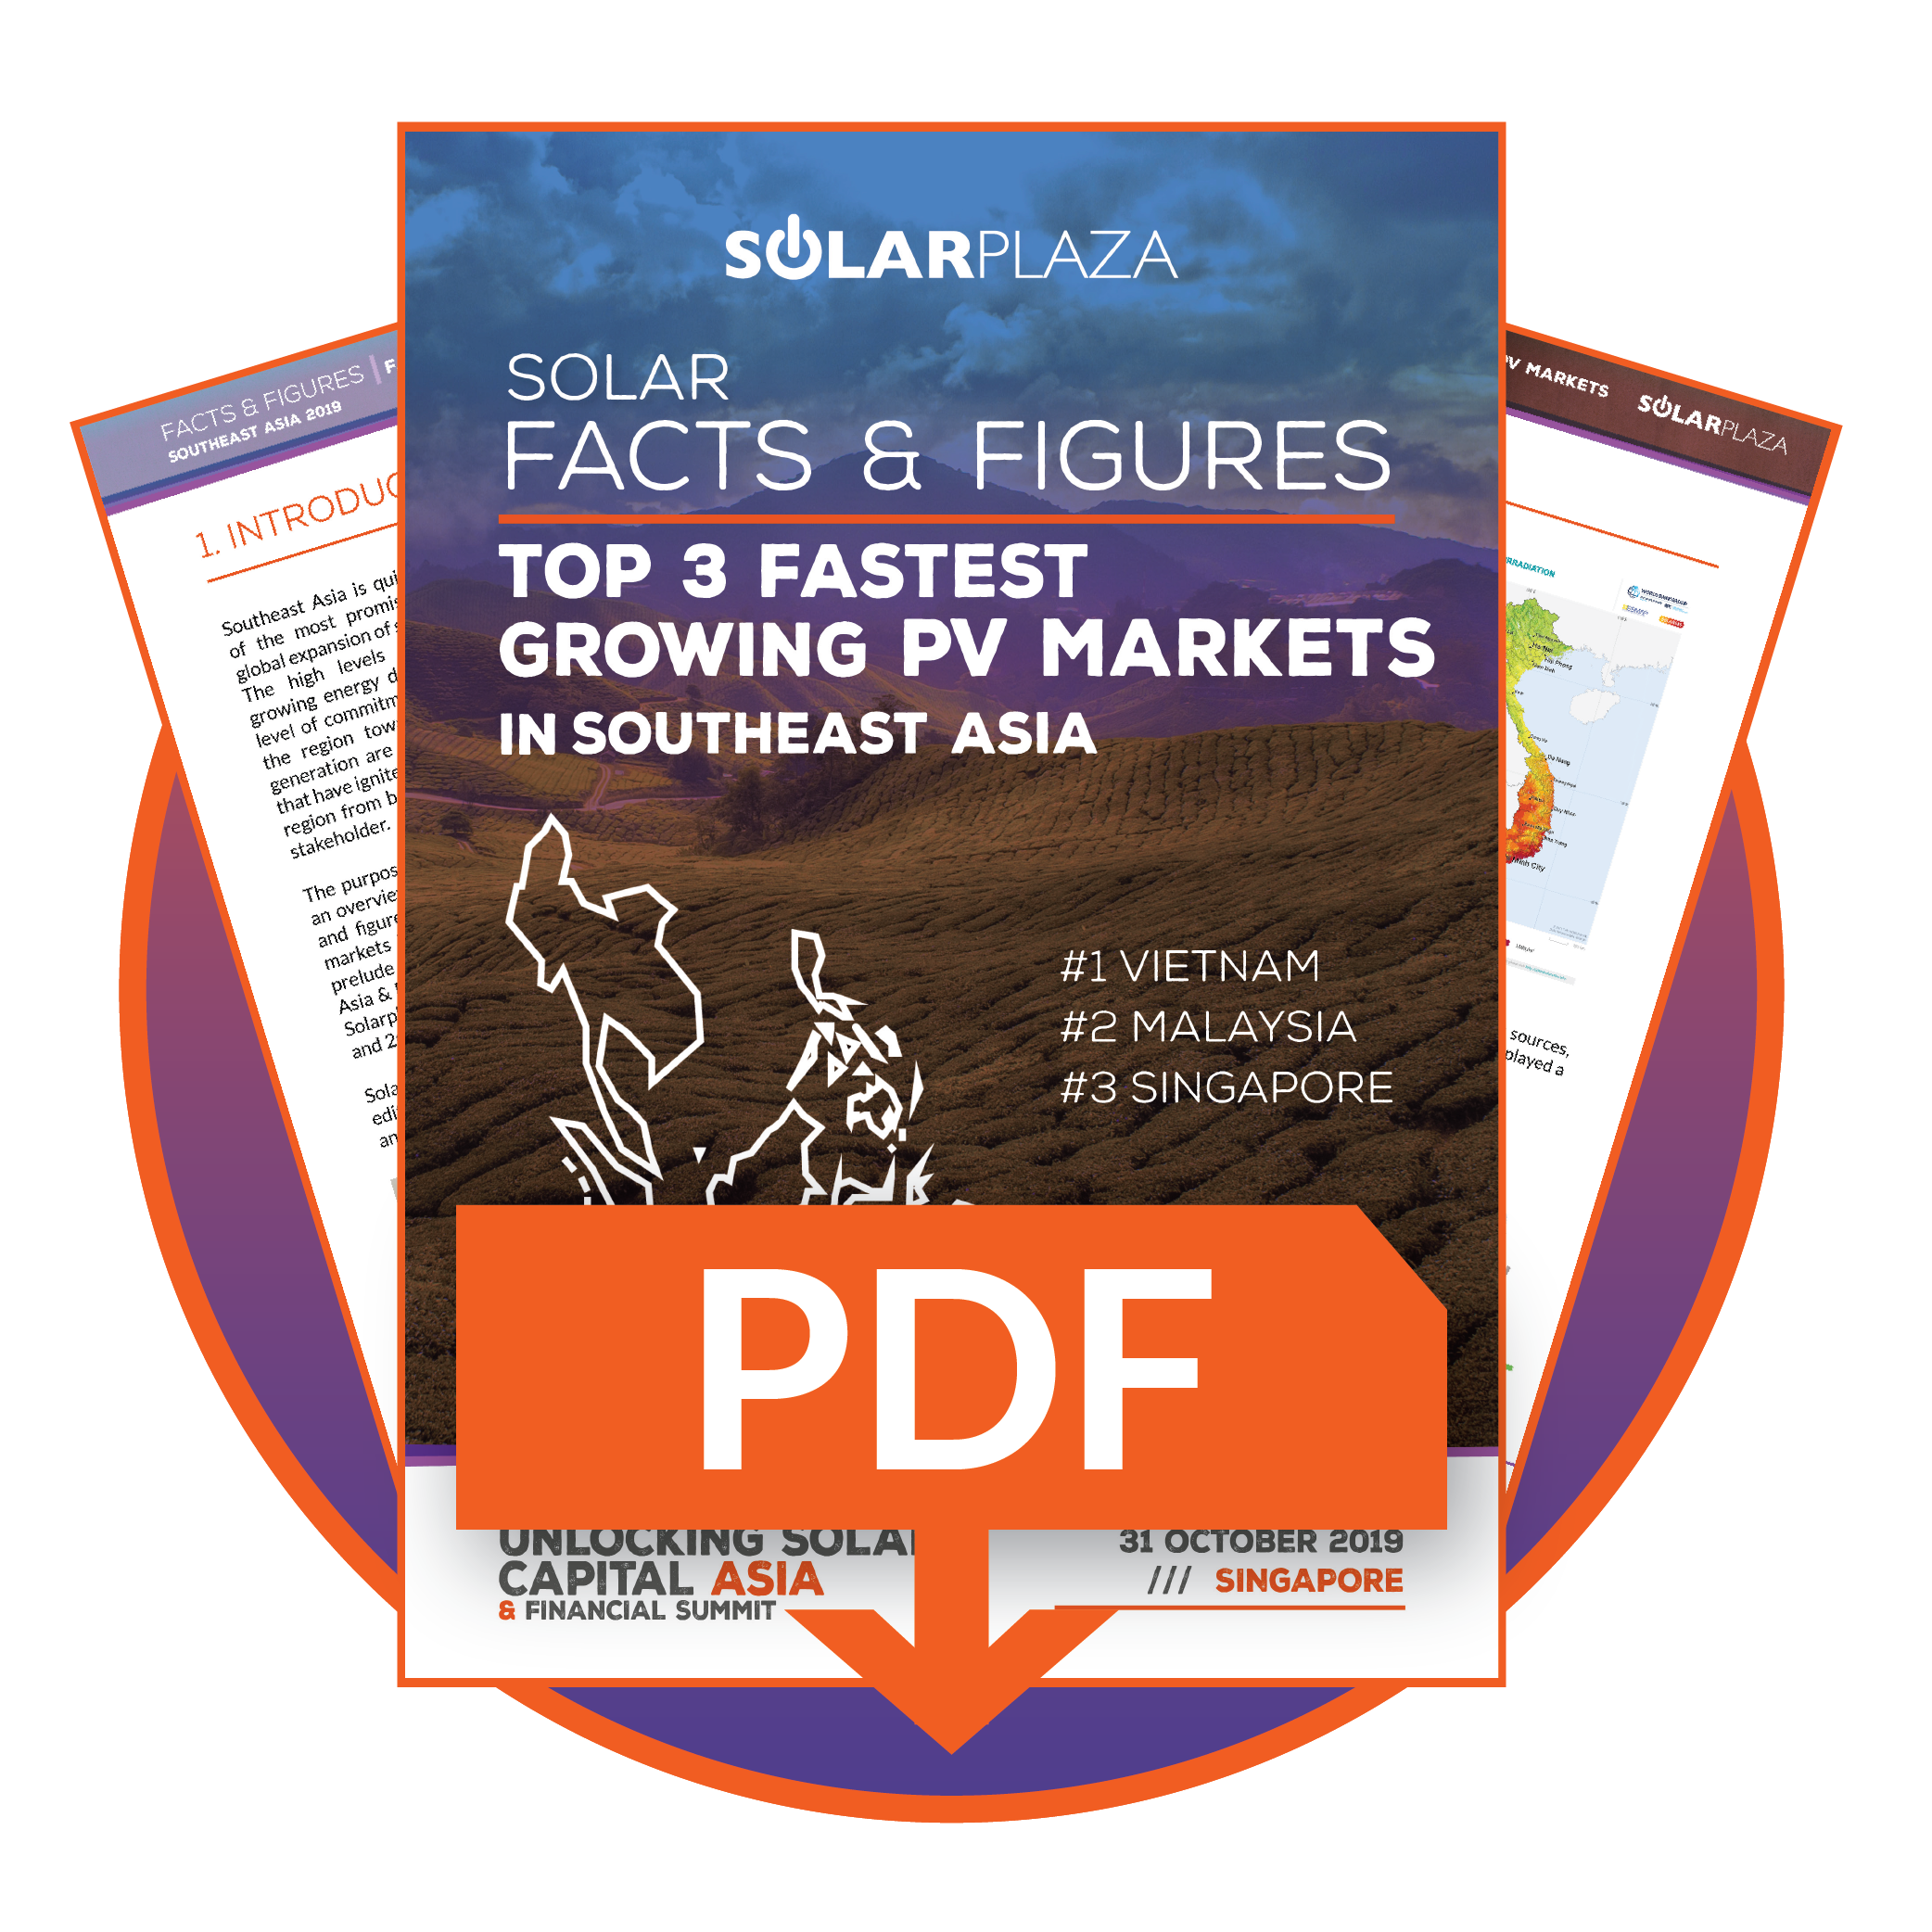 thumb Solar Facts & Figures Southeast Asia 2019-01.png